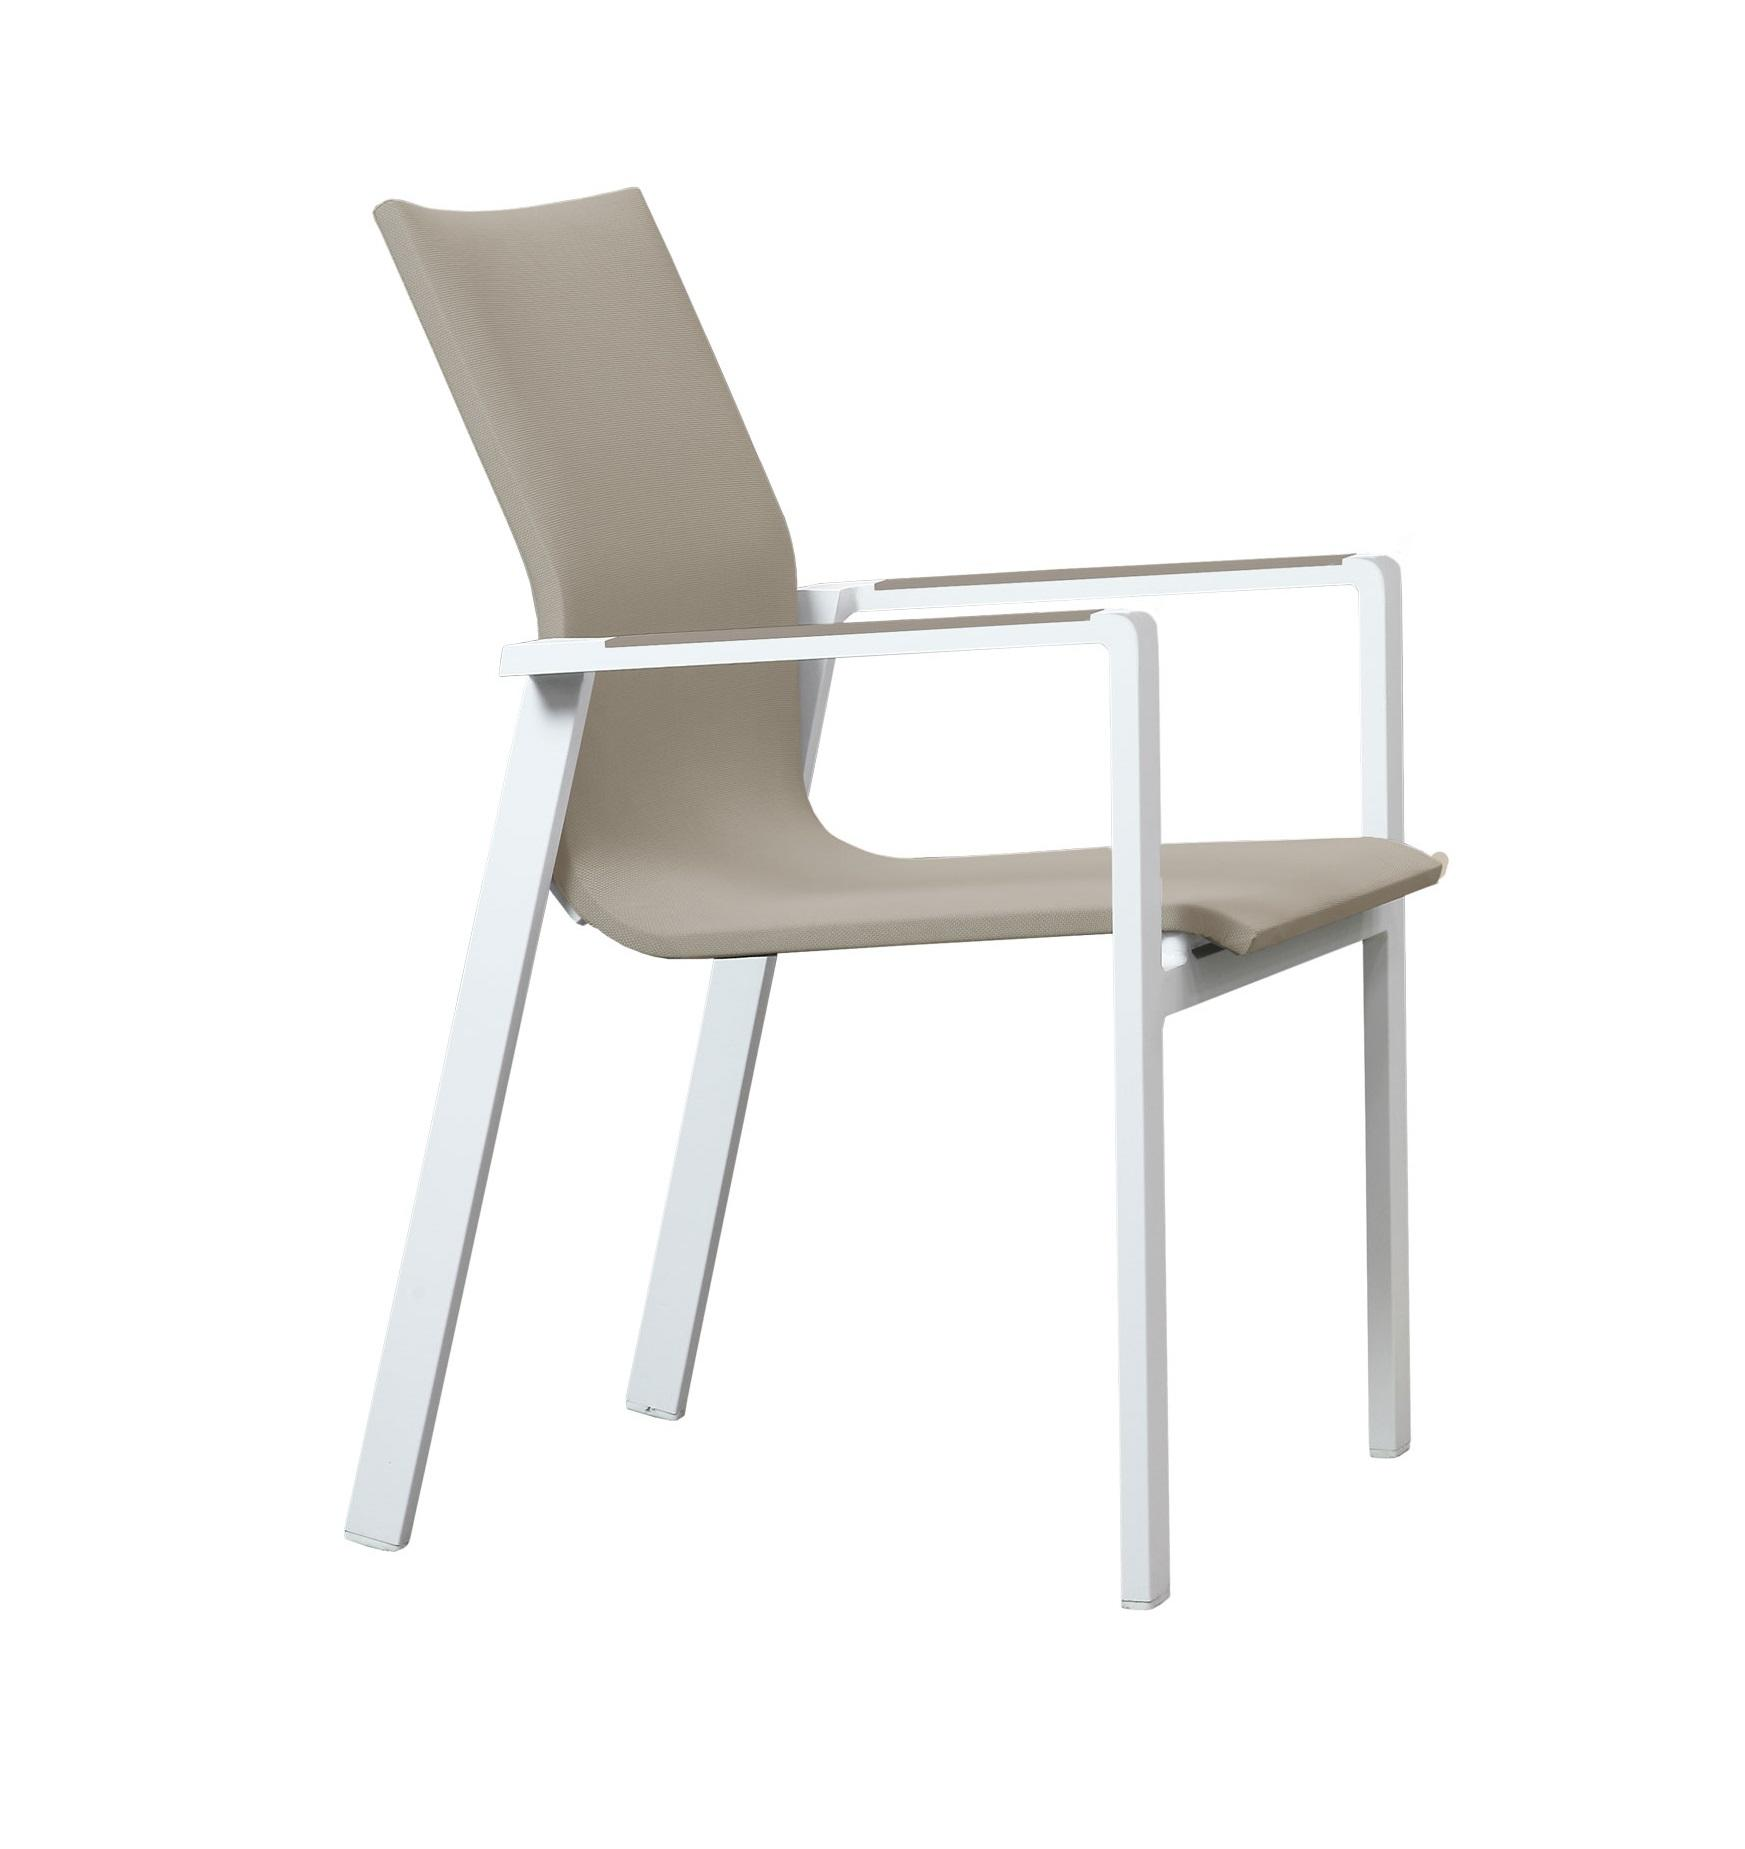 sling textilene garden dining chair stacking in stone and white cut out